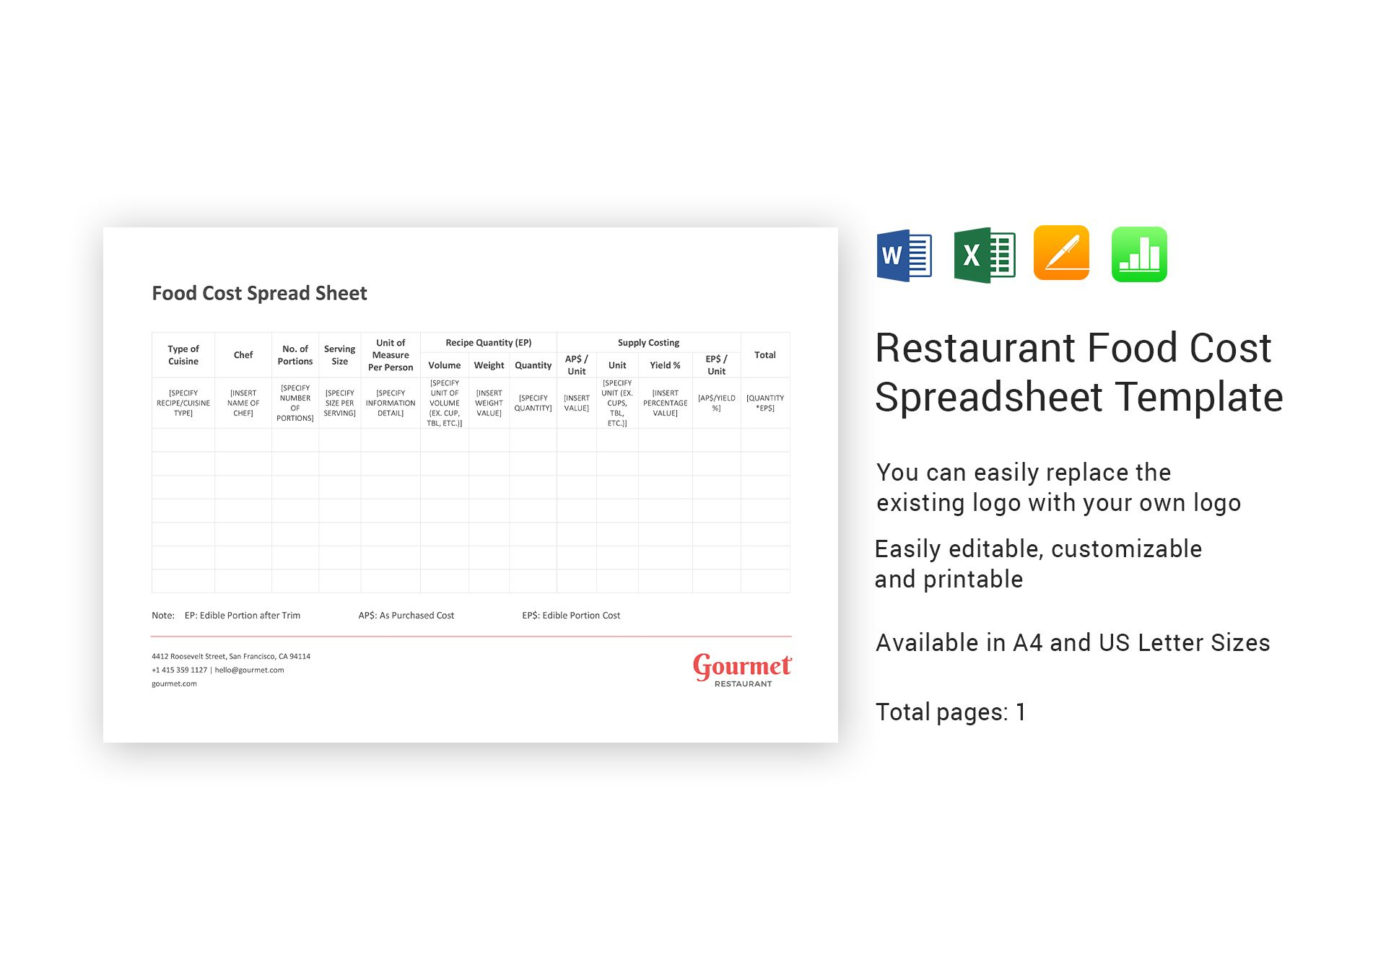 Food Cost Spreadsheet Excel Throughout Restaurant Food Cost Spreadsheet Template In Word, Excel, Apple